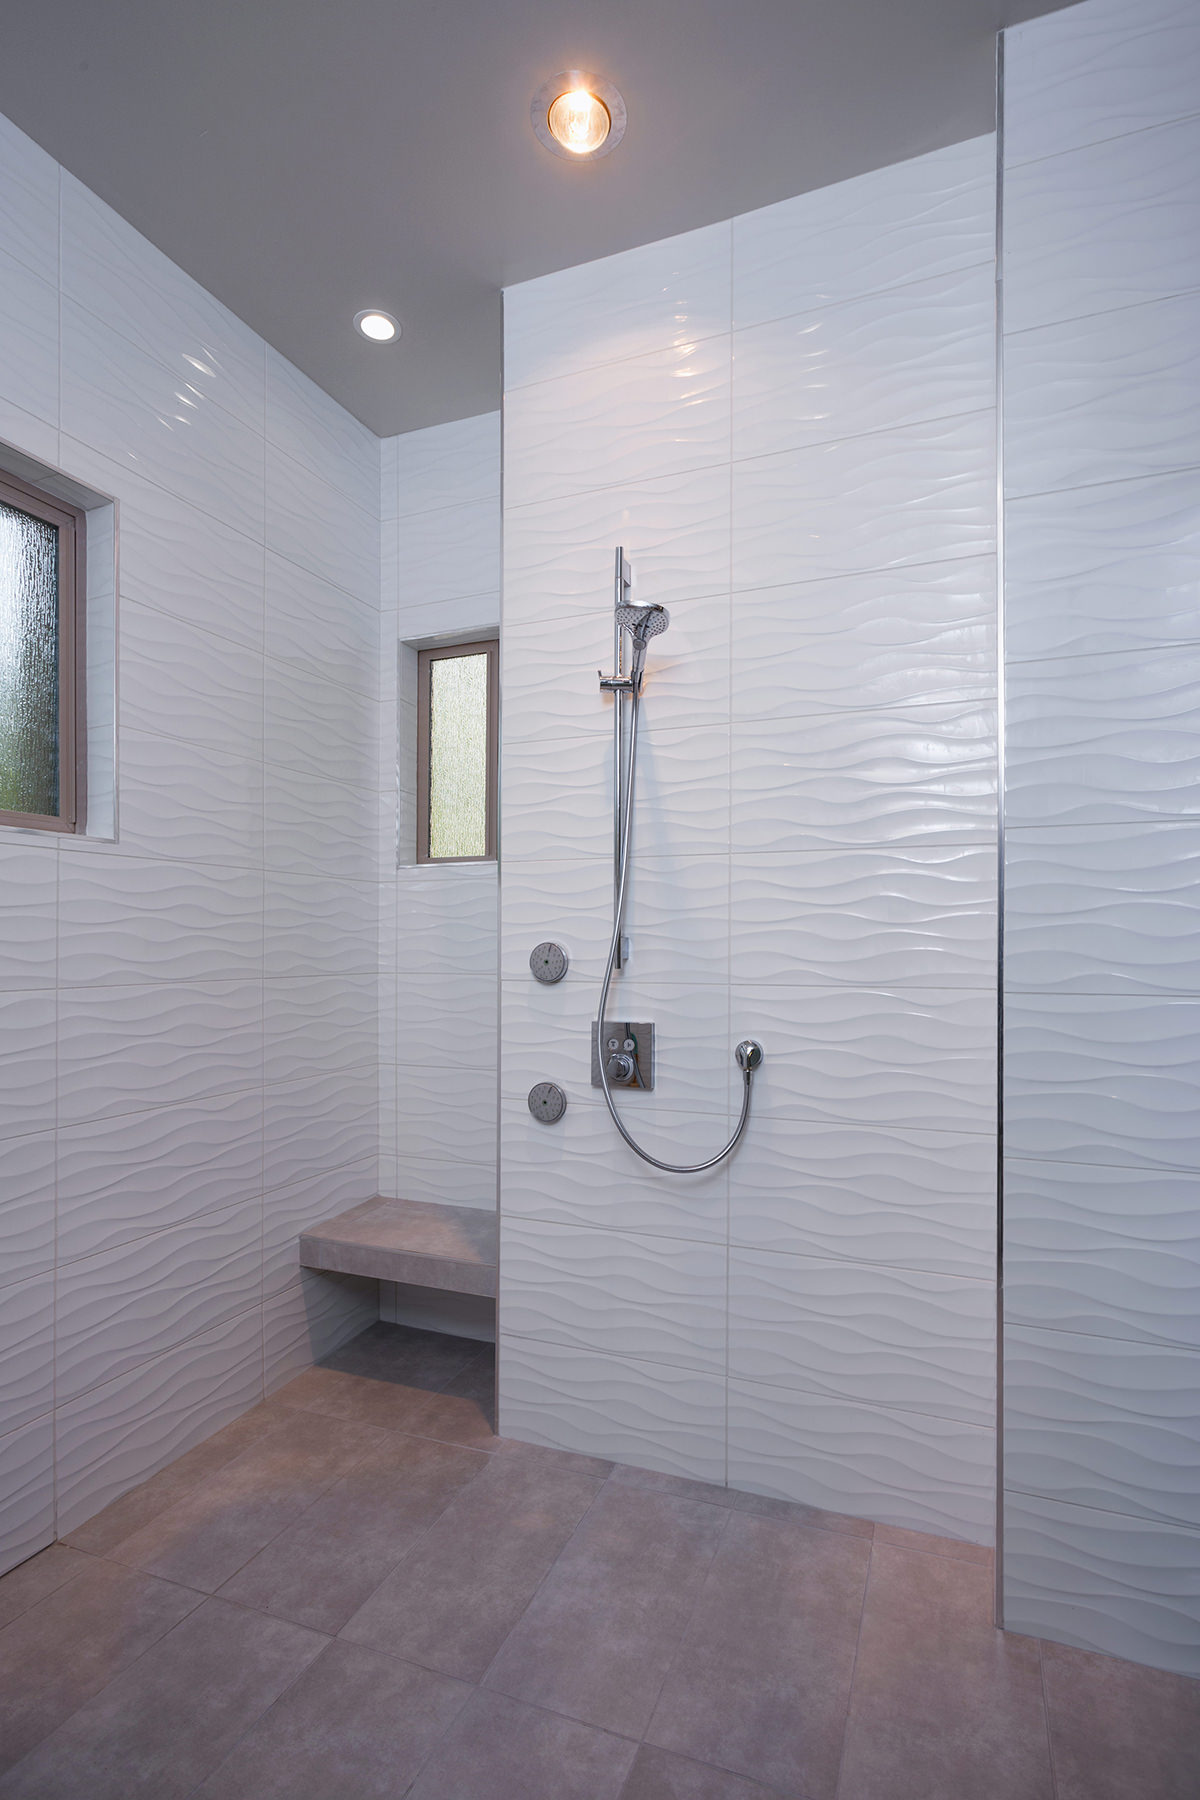 bathroom-interior-design-los-altos-california-ktj-design-co-7.jpg